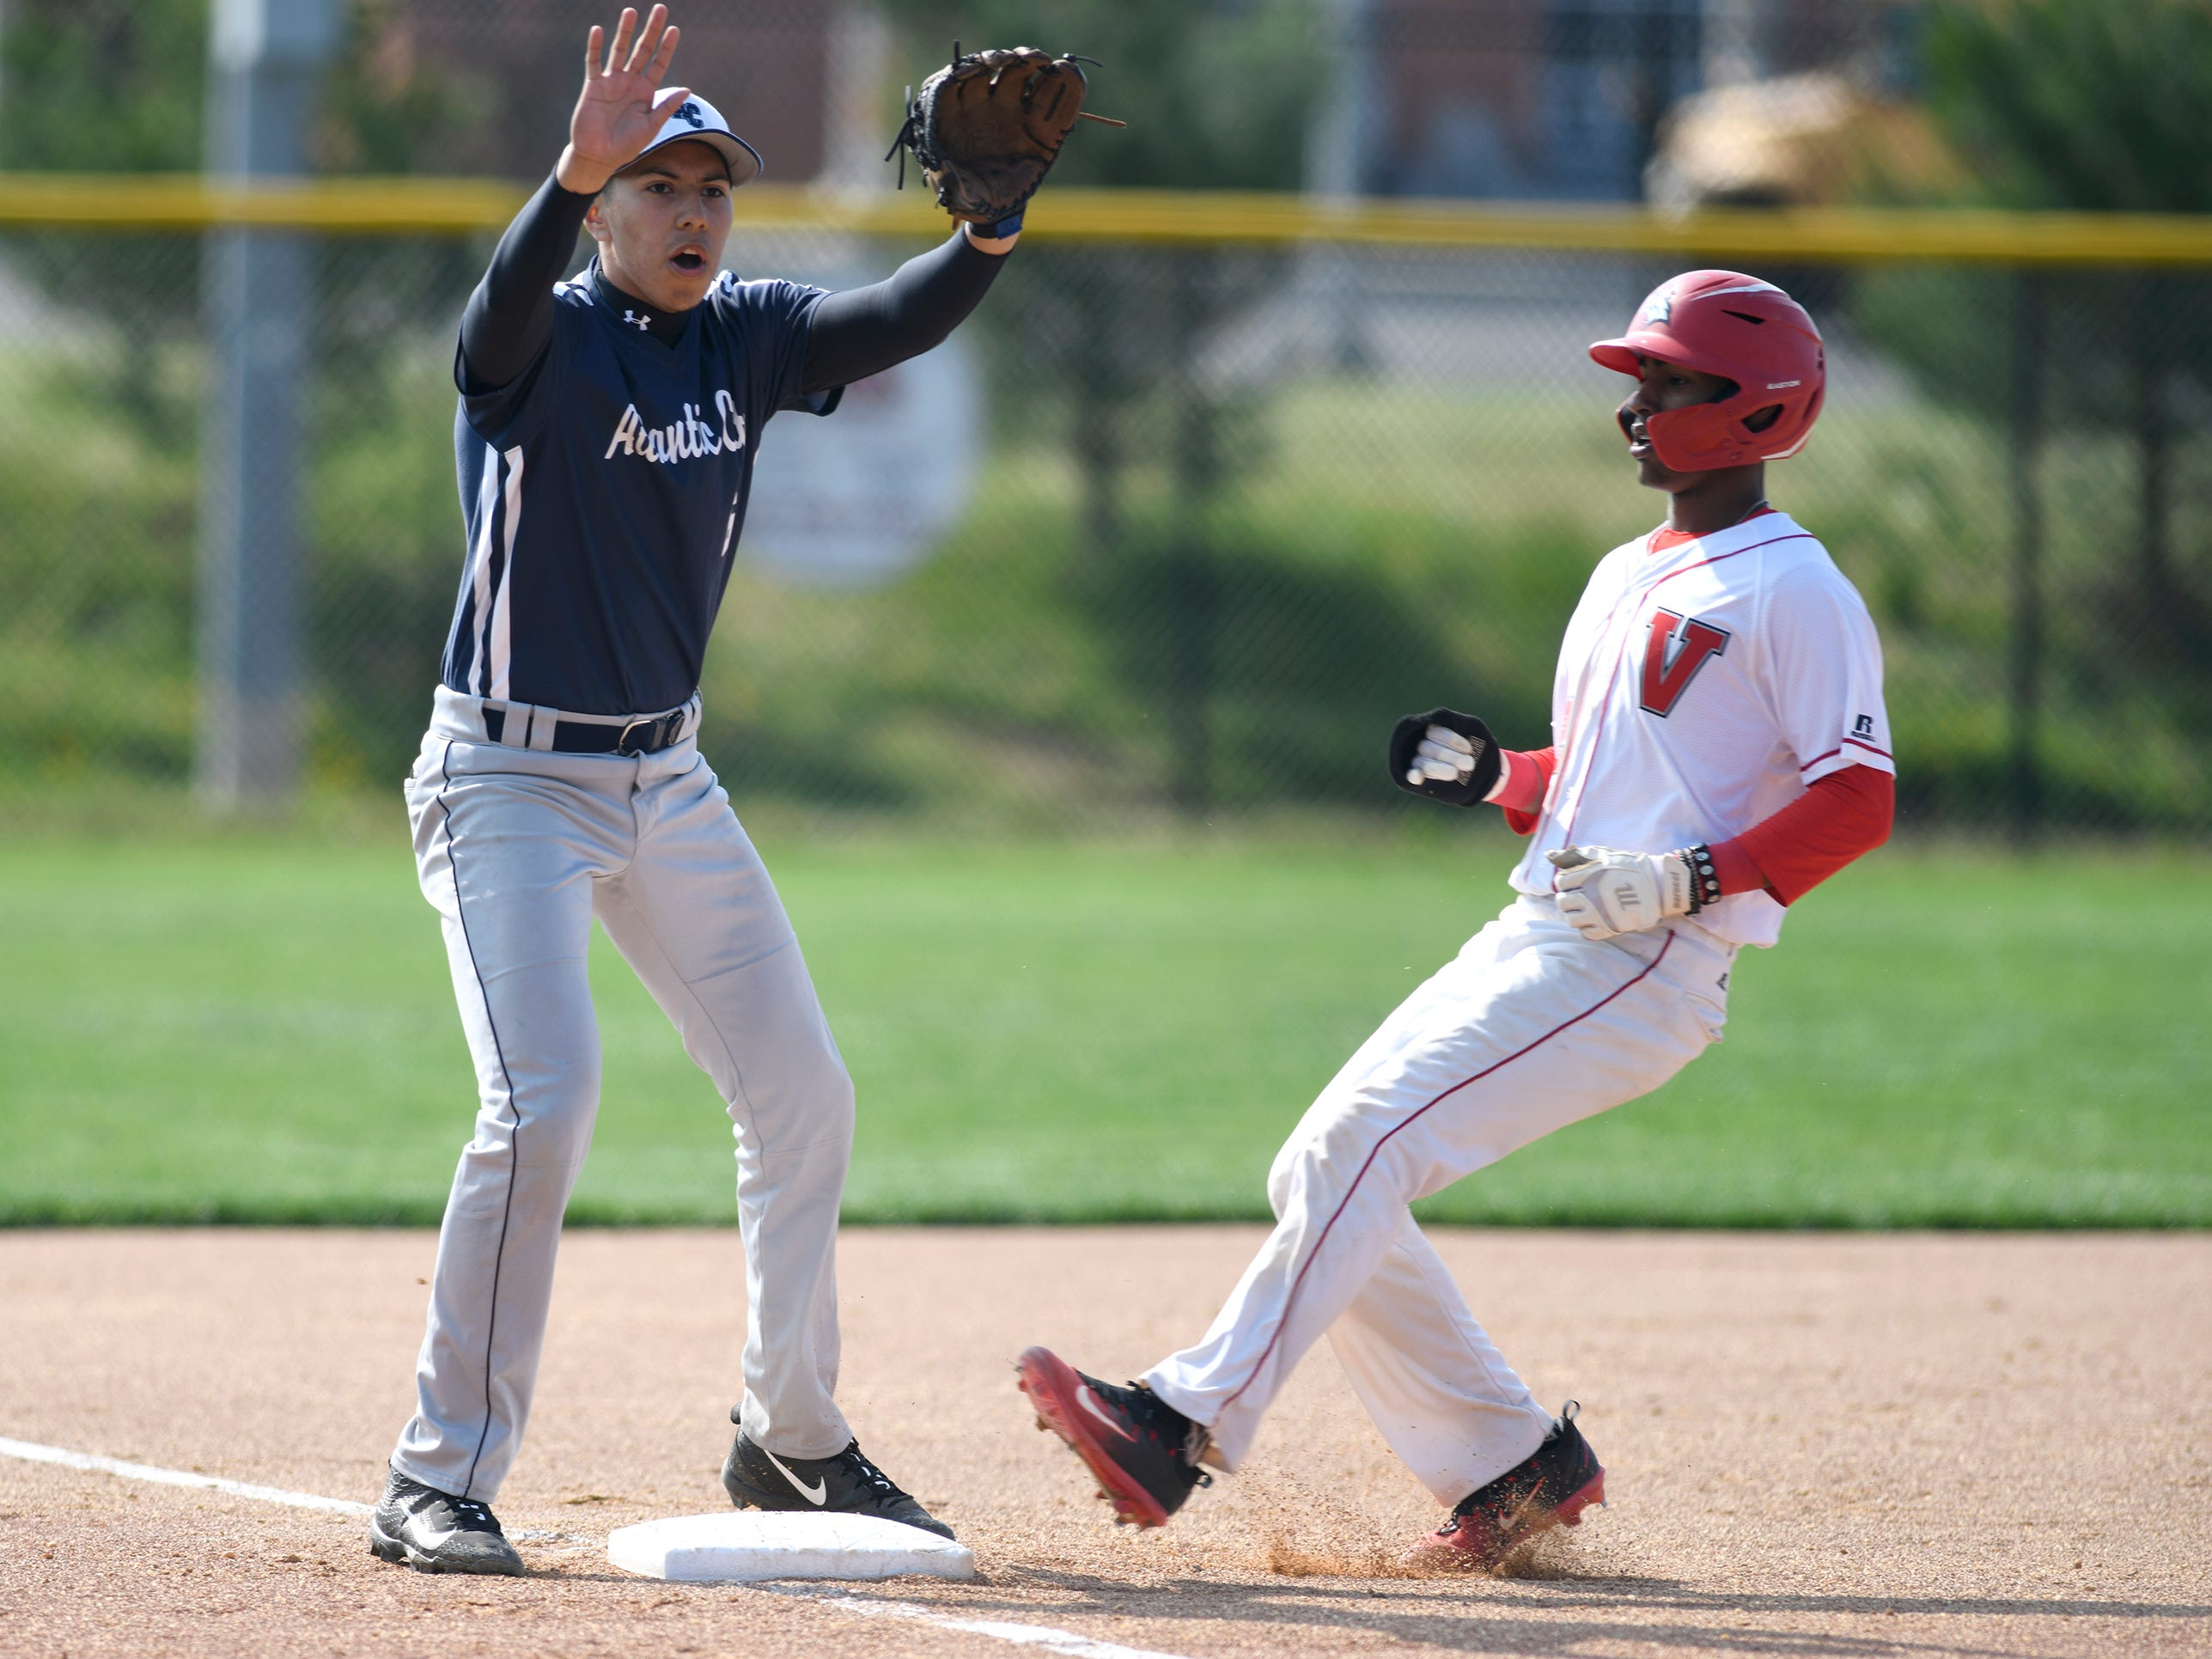 Vineland's Erv Bogan runs to third base during Wednesday's game against Atlantic City. The Fighting Clan dismantled the visiting Vikings 12-2.